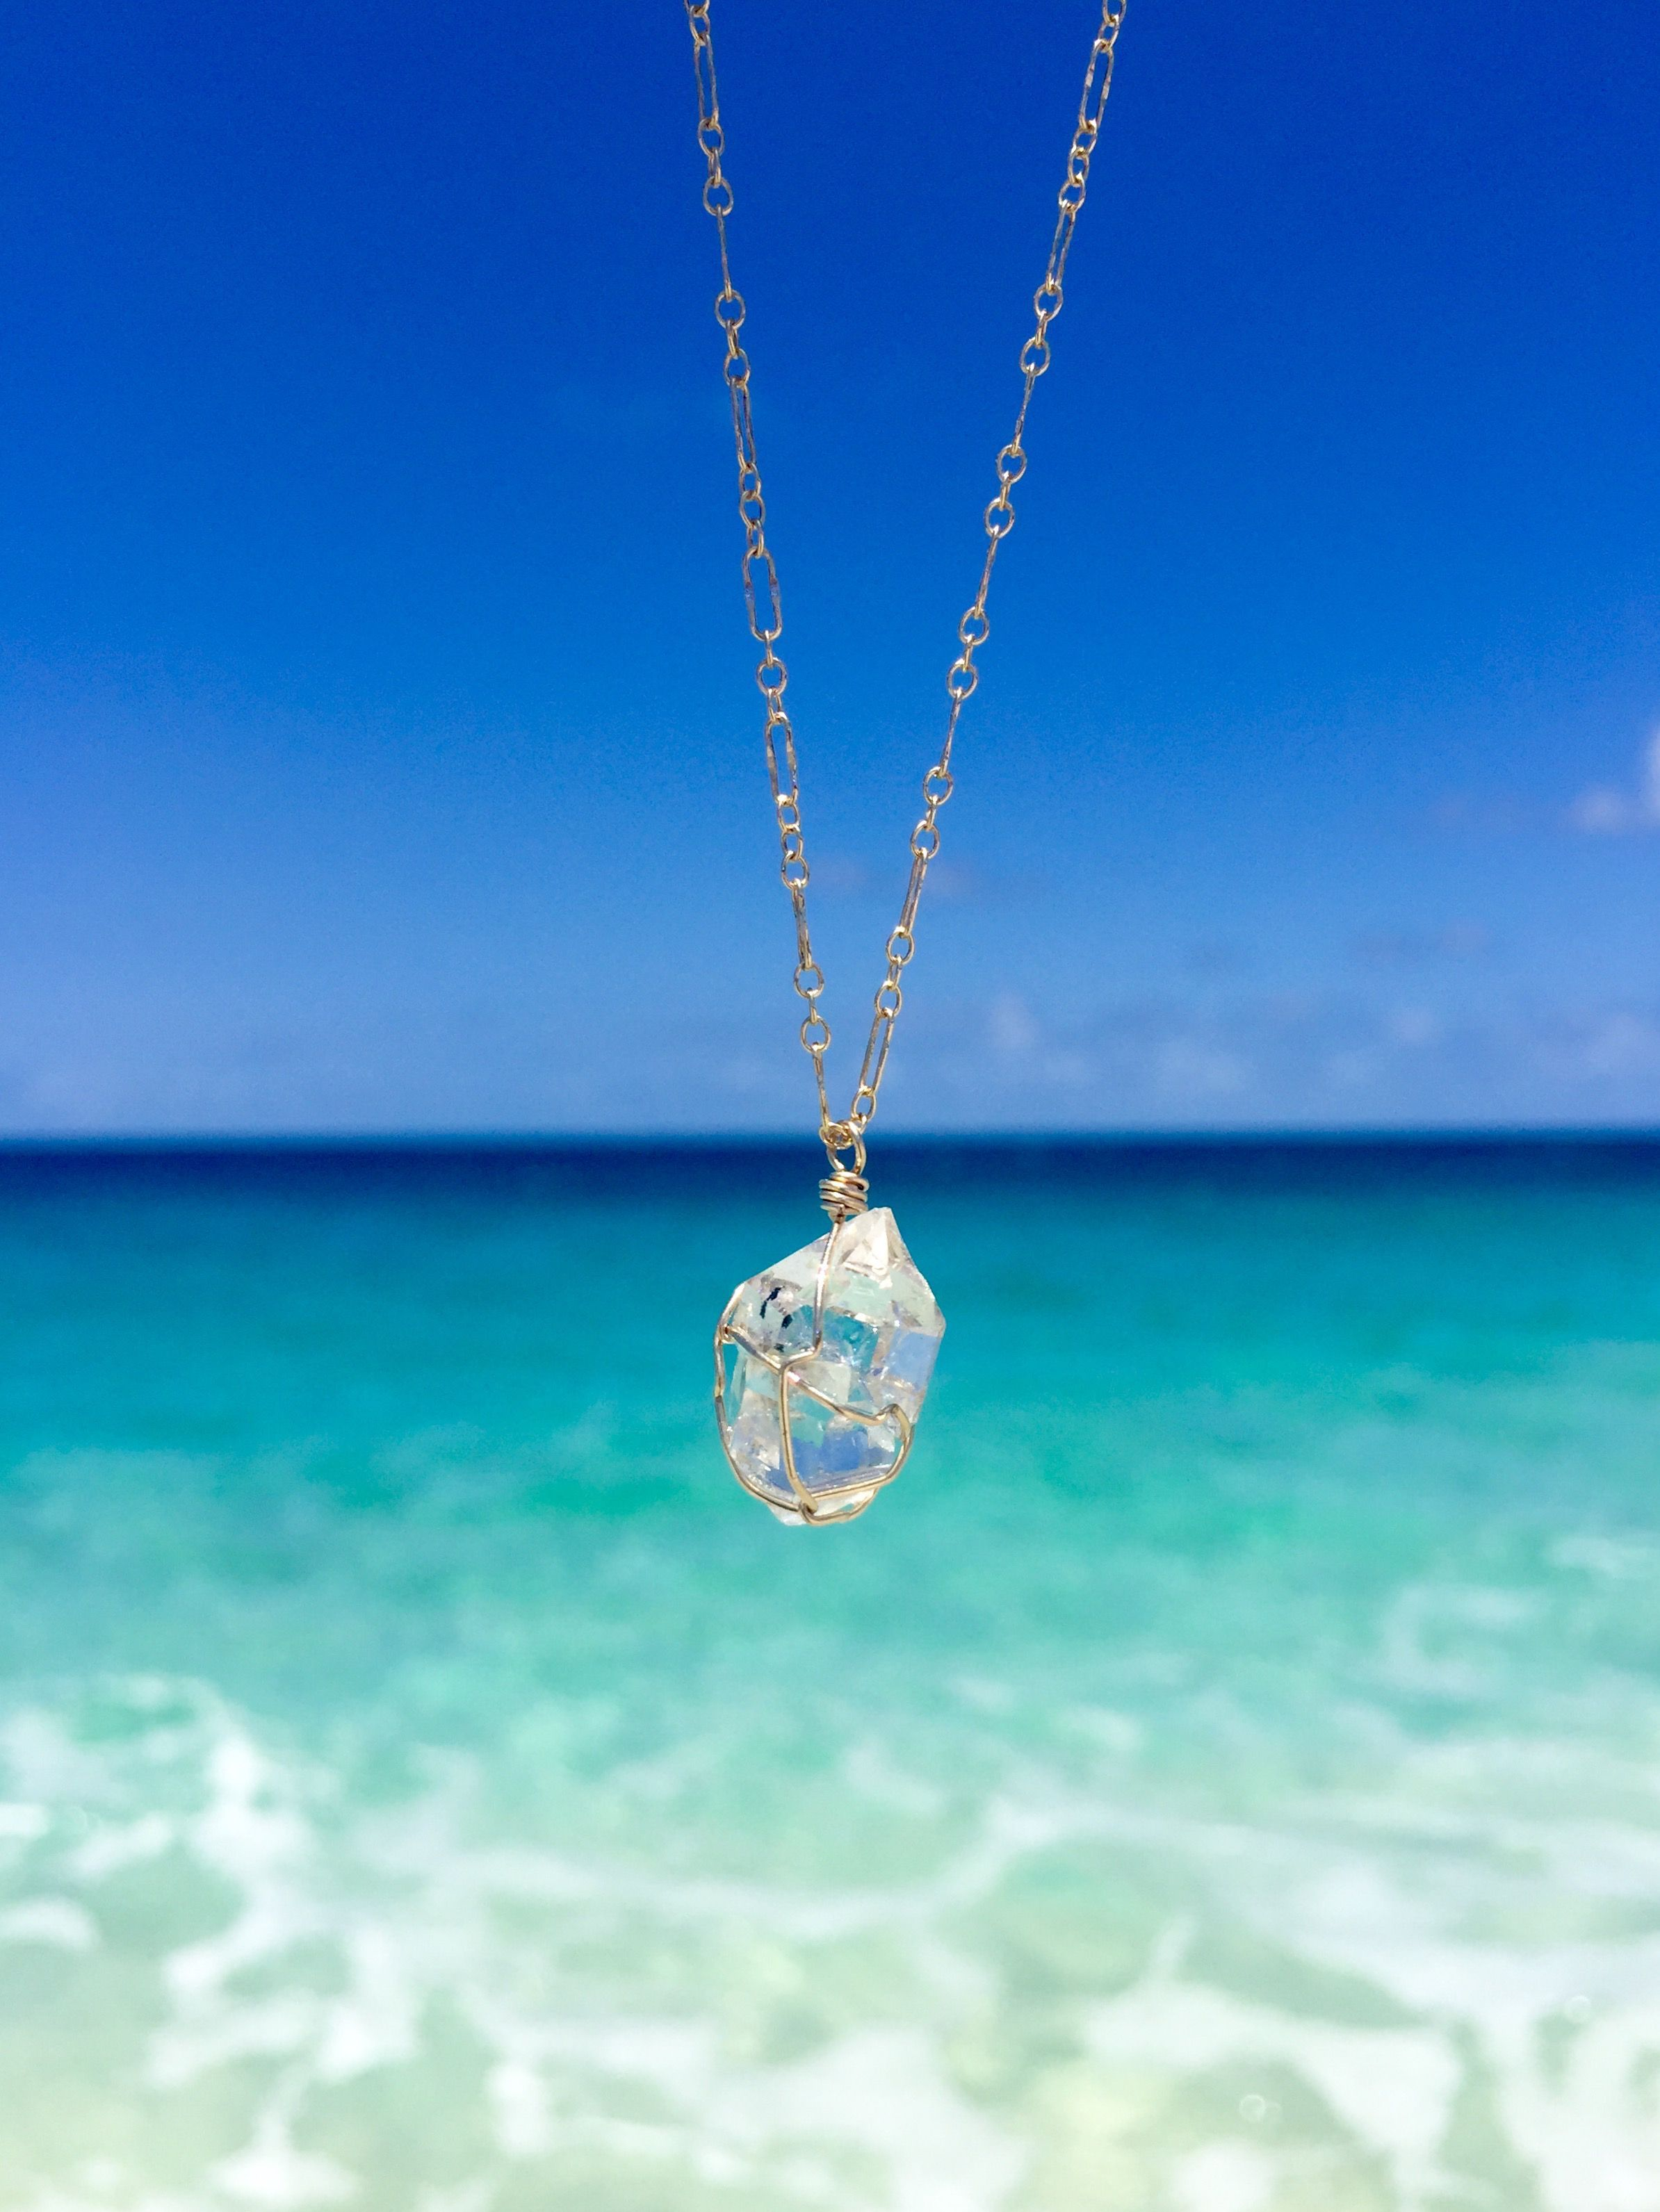 Our newest necklace huna the huna herkimer diamond necklace means